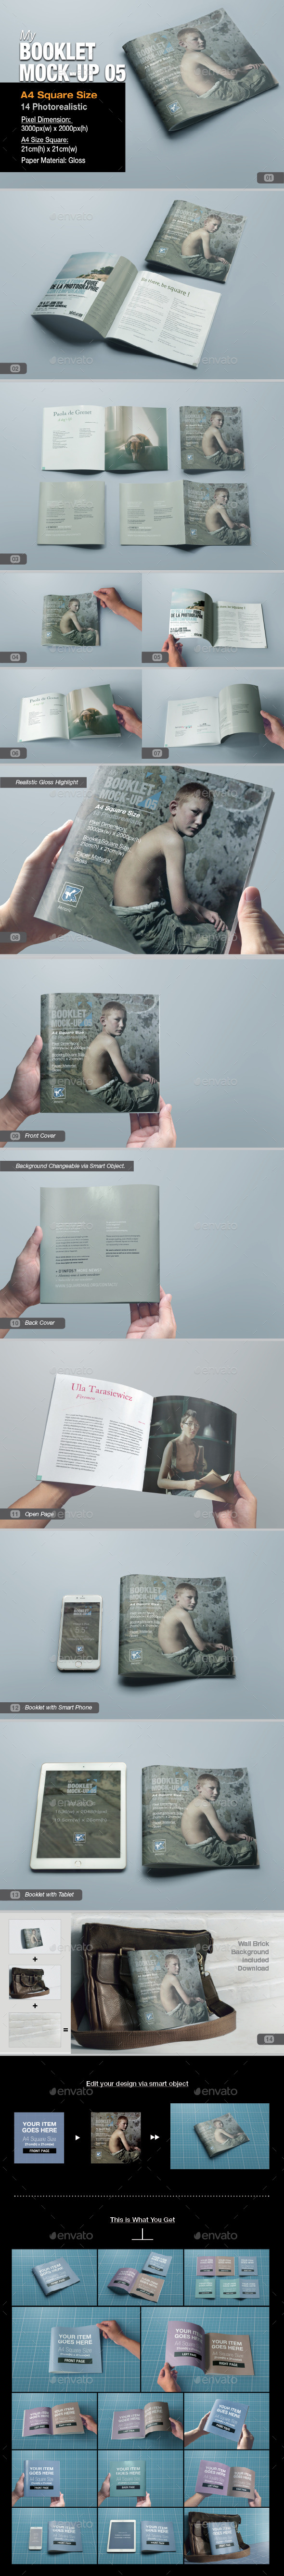 GraphicRiver myBooklet Mock-up 05 10701634